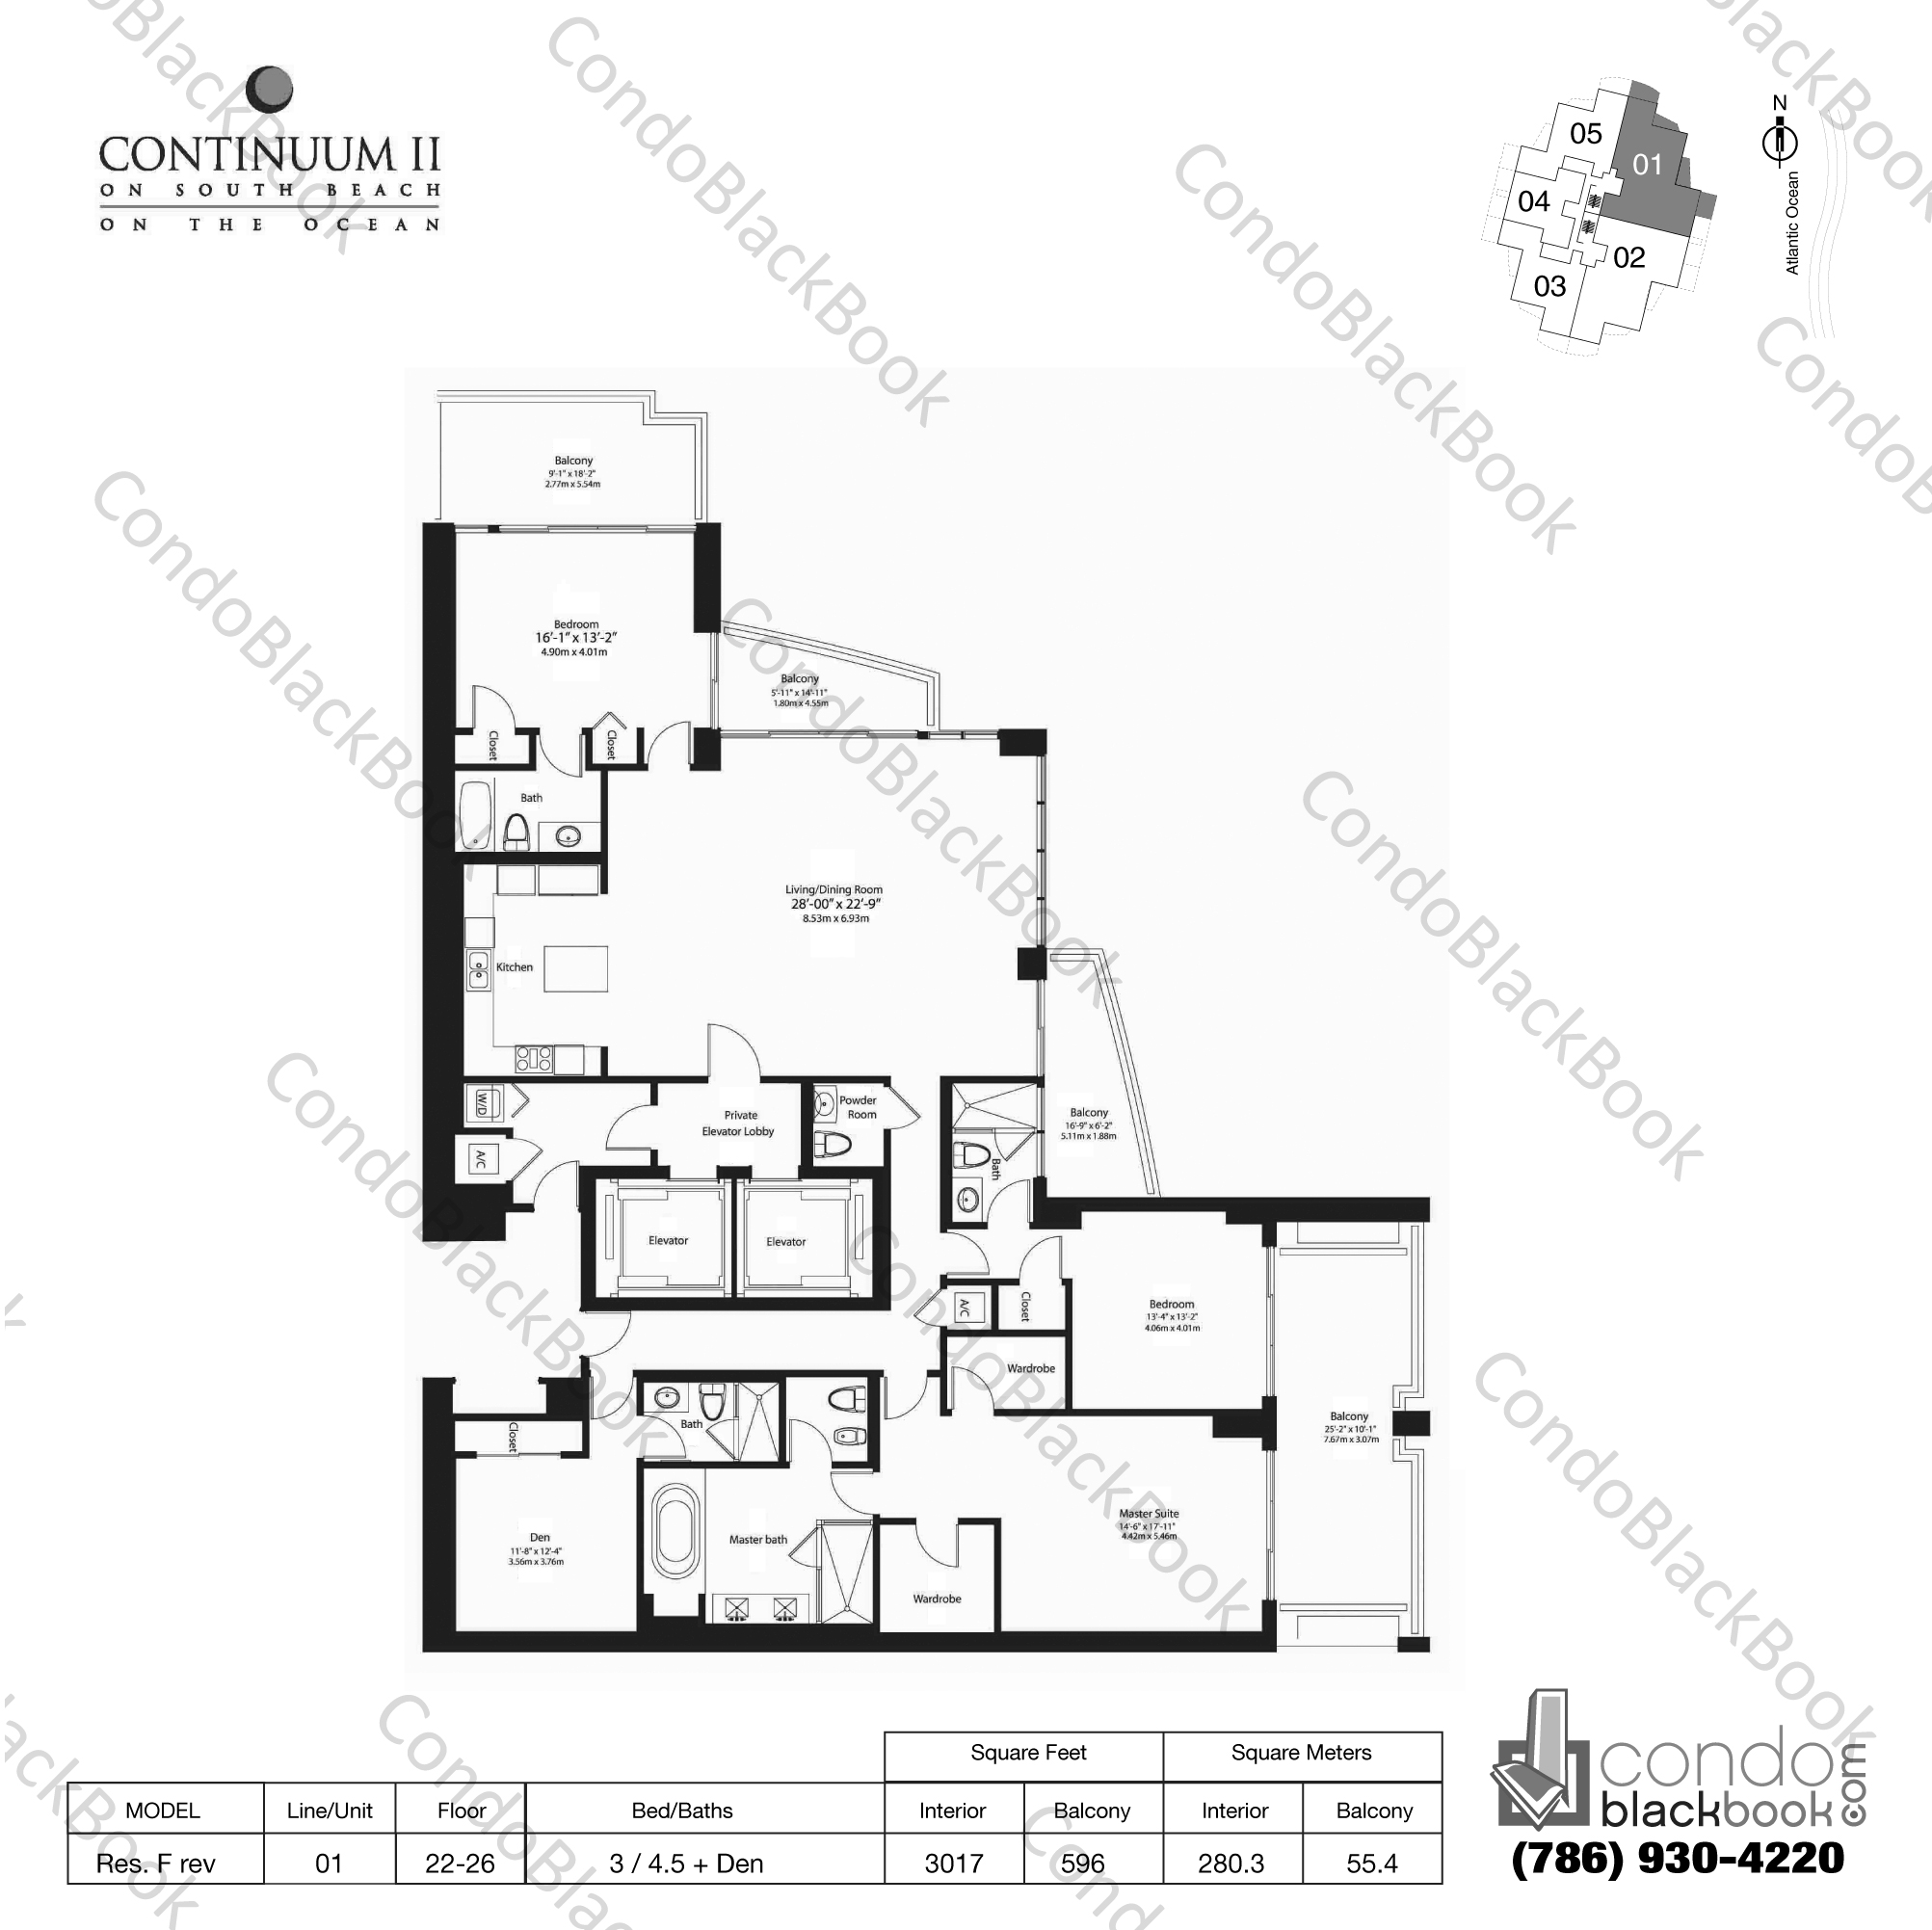 Floor plan for Continuum II North South Beach Miami Beach, model Res. F rev, line 01, 3 / 4.5 + Den bedrooms, 3017 sq ft